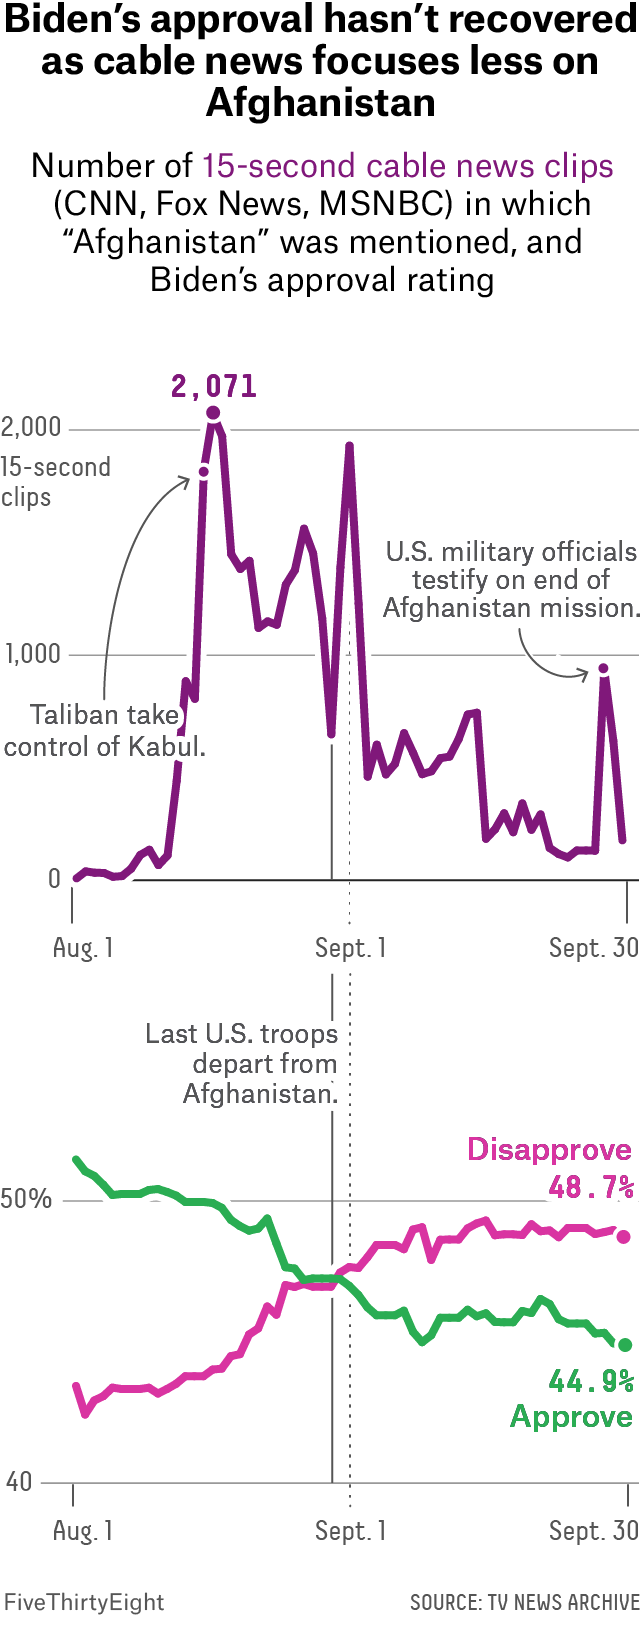 """A line chart showing the number of 15-second cable news clips mentioning """"Afghanistan"""" with peak mentions in the middle of August and a slow, noisy decline thereafter. A line chart showing a line for Biden's disapproval rating and a line for Biden's approval rating. The lines intersect around the end of August and by the end of September, 48.7% of Americans disapprove of Biden."""